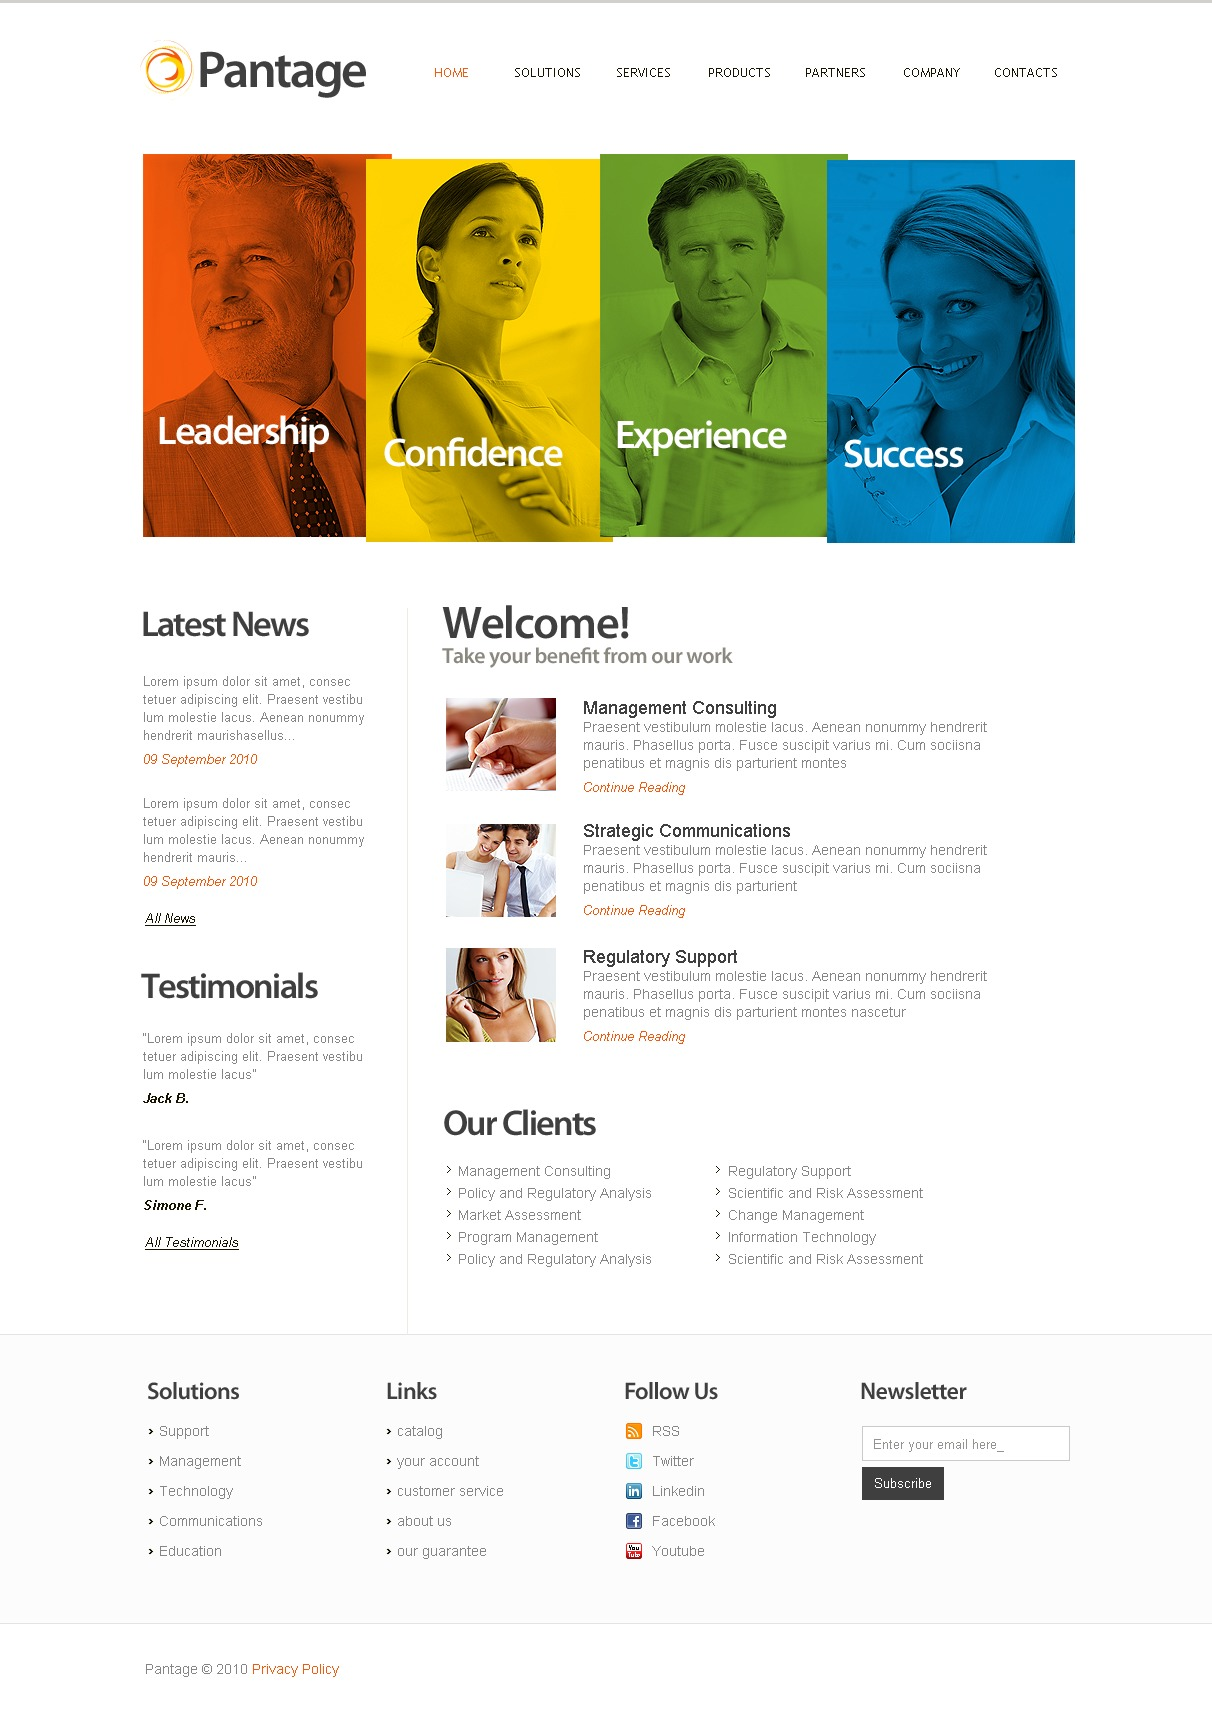 The Pantage Business Company PSD Design 54411, one of the best PSD templates of its kind (business, wide), also known as pantage business company PSD template, corporate solutions PSD template, innovations PSD template, contacts PSD template, service PSD template, support PSD template, information dealer PSD template, stocks PSD template, team PSD template, success PSD template, money PSD template, marketing PSD template, director PSD template, manager PSD template, analytics PSD template, planning PSD template, limited PSD template, office PSD template, sales and related with pantage business company, corporate solutions, innovations, contacts, service, support, information dealer, stocks, team, success, money, marketing, director, manager, analytics, planning, limited, office, sales, etc.